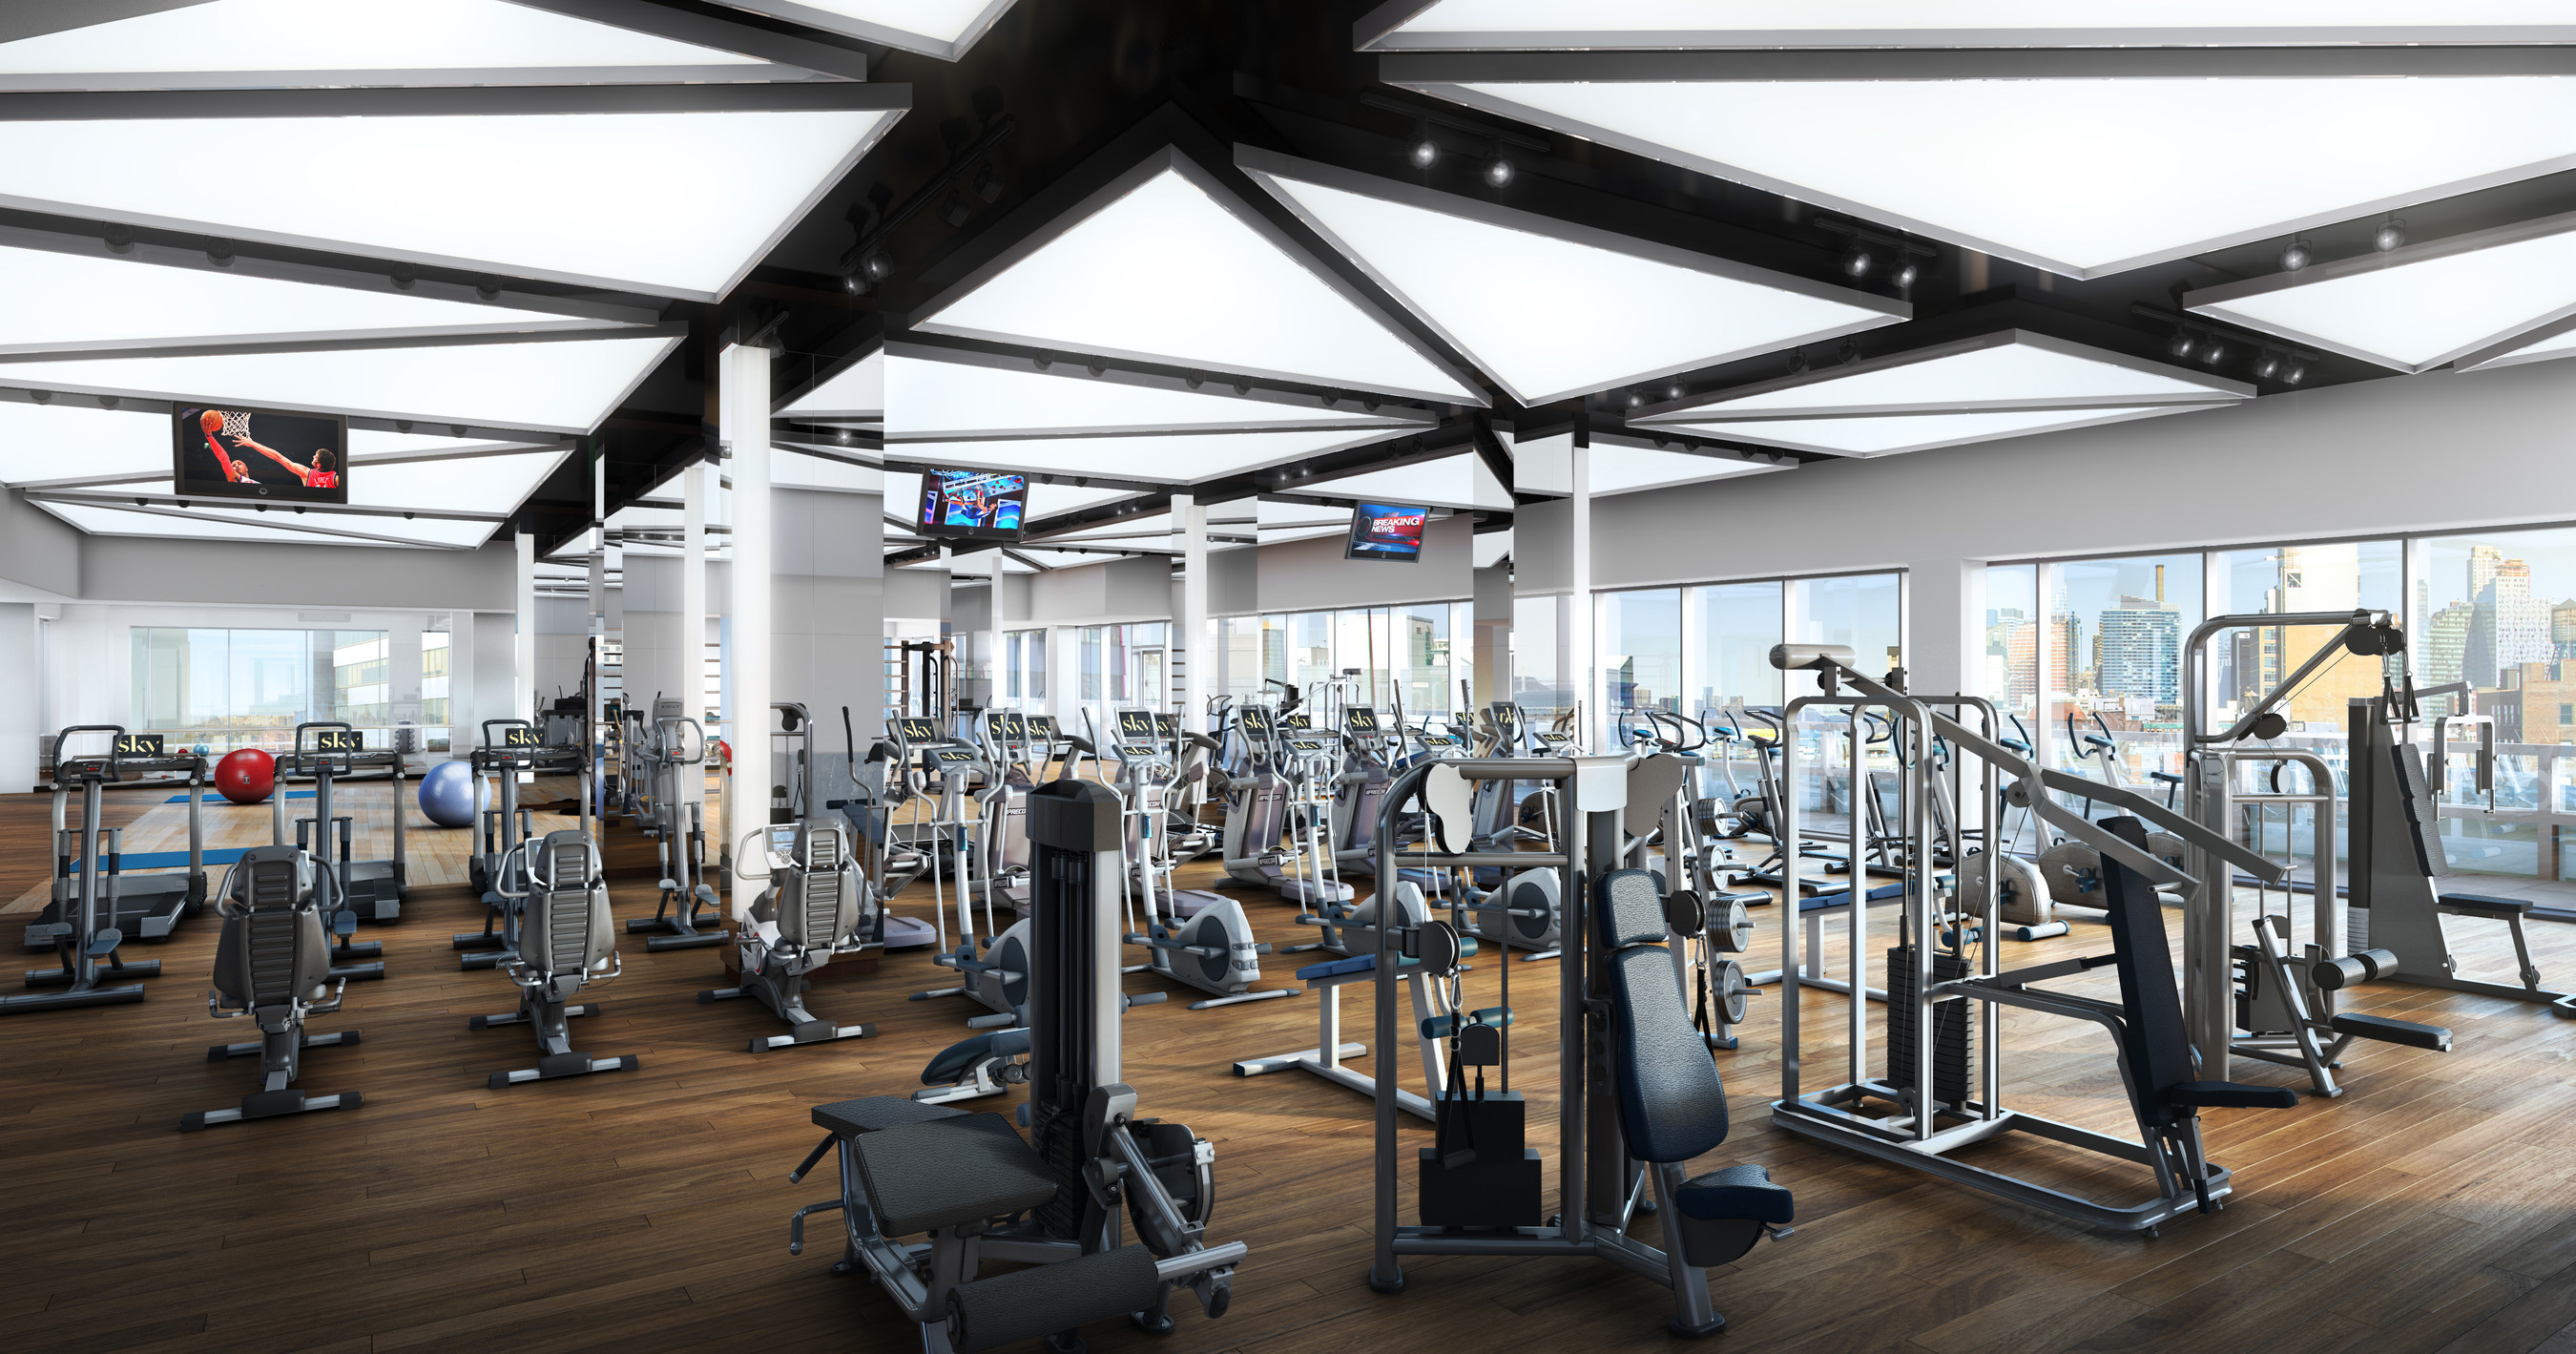 Life Time Athletic at Sky will offer an unparalleled, resort-style health, fitness and lifestyle experience when it opens this spring.